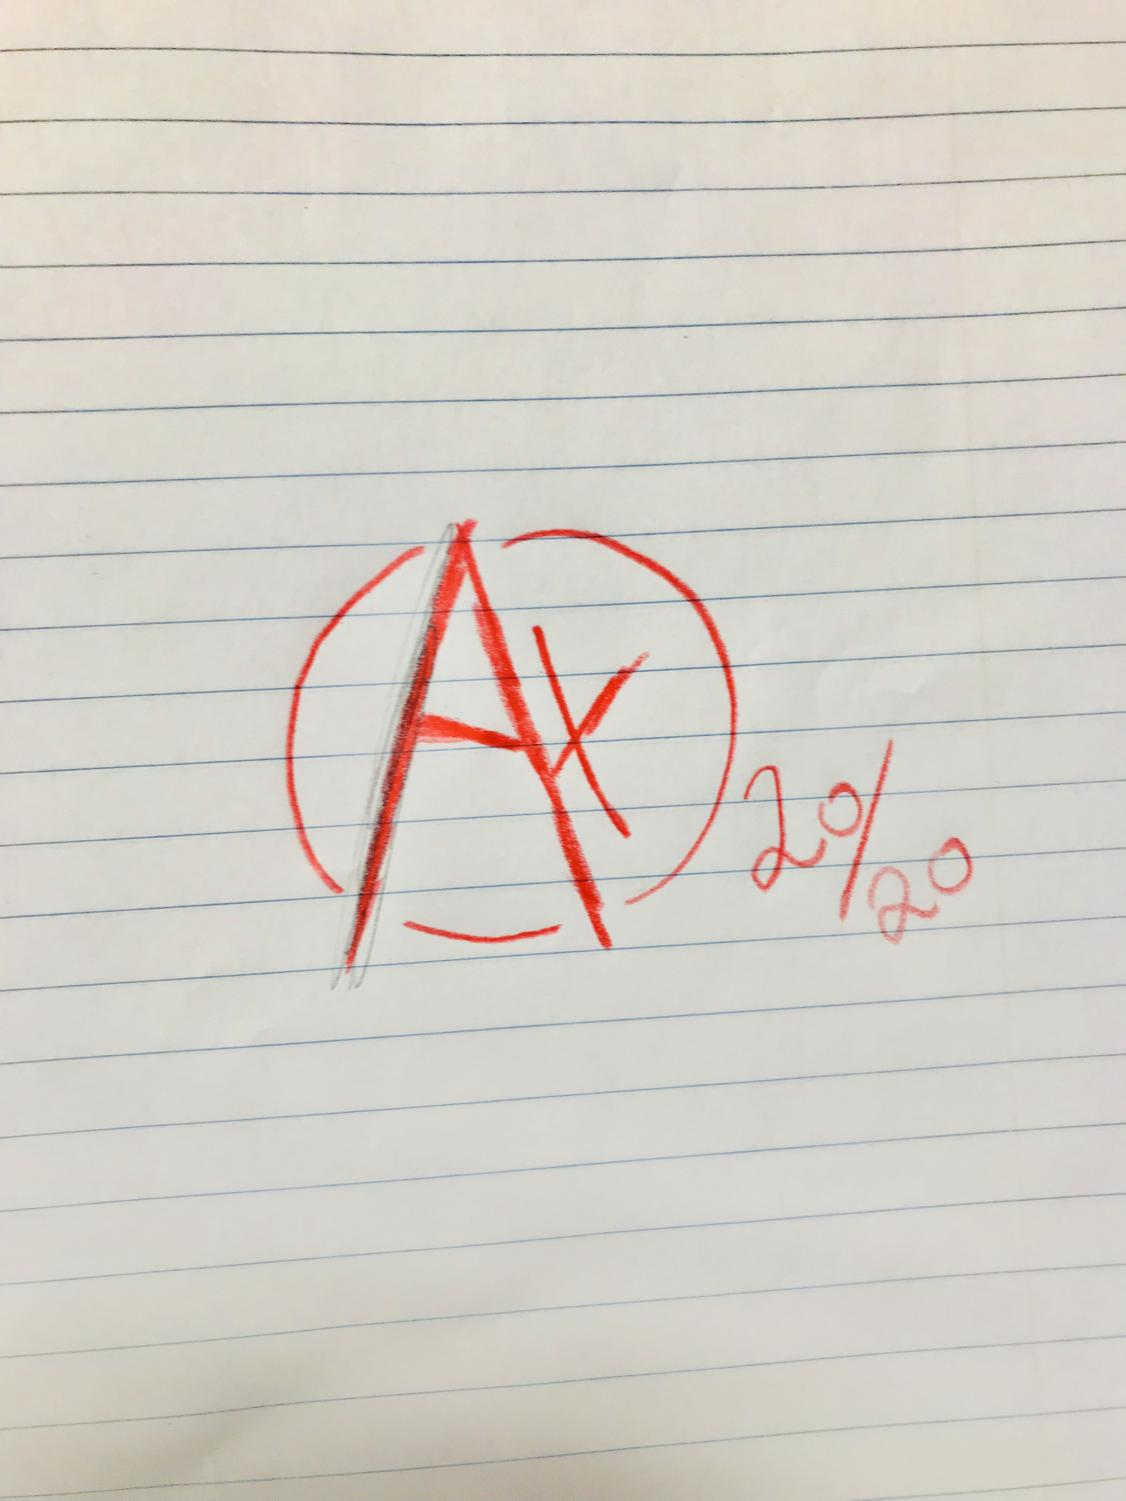 A+ drawn by Johnathan Monteith, 7th grader at West.